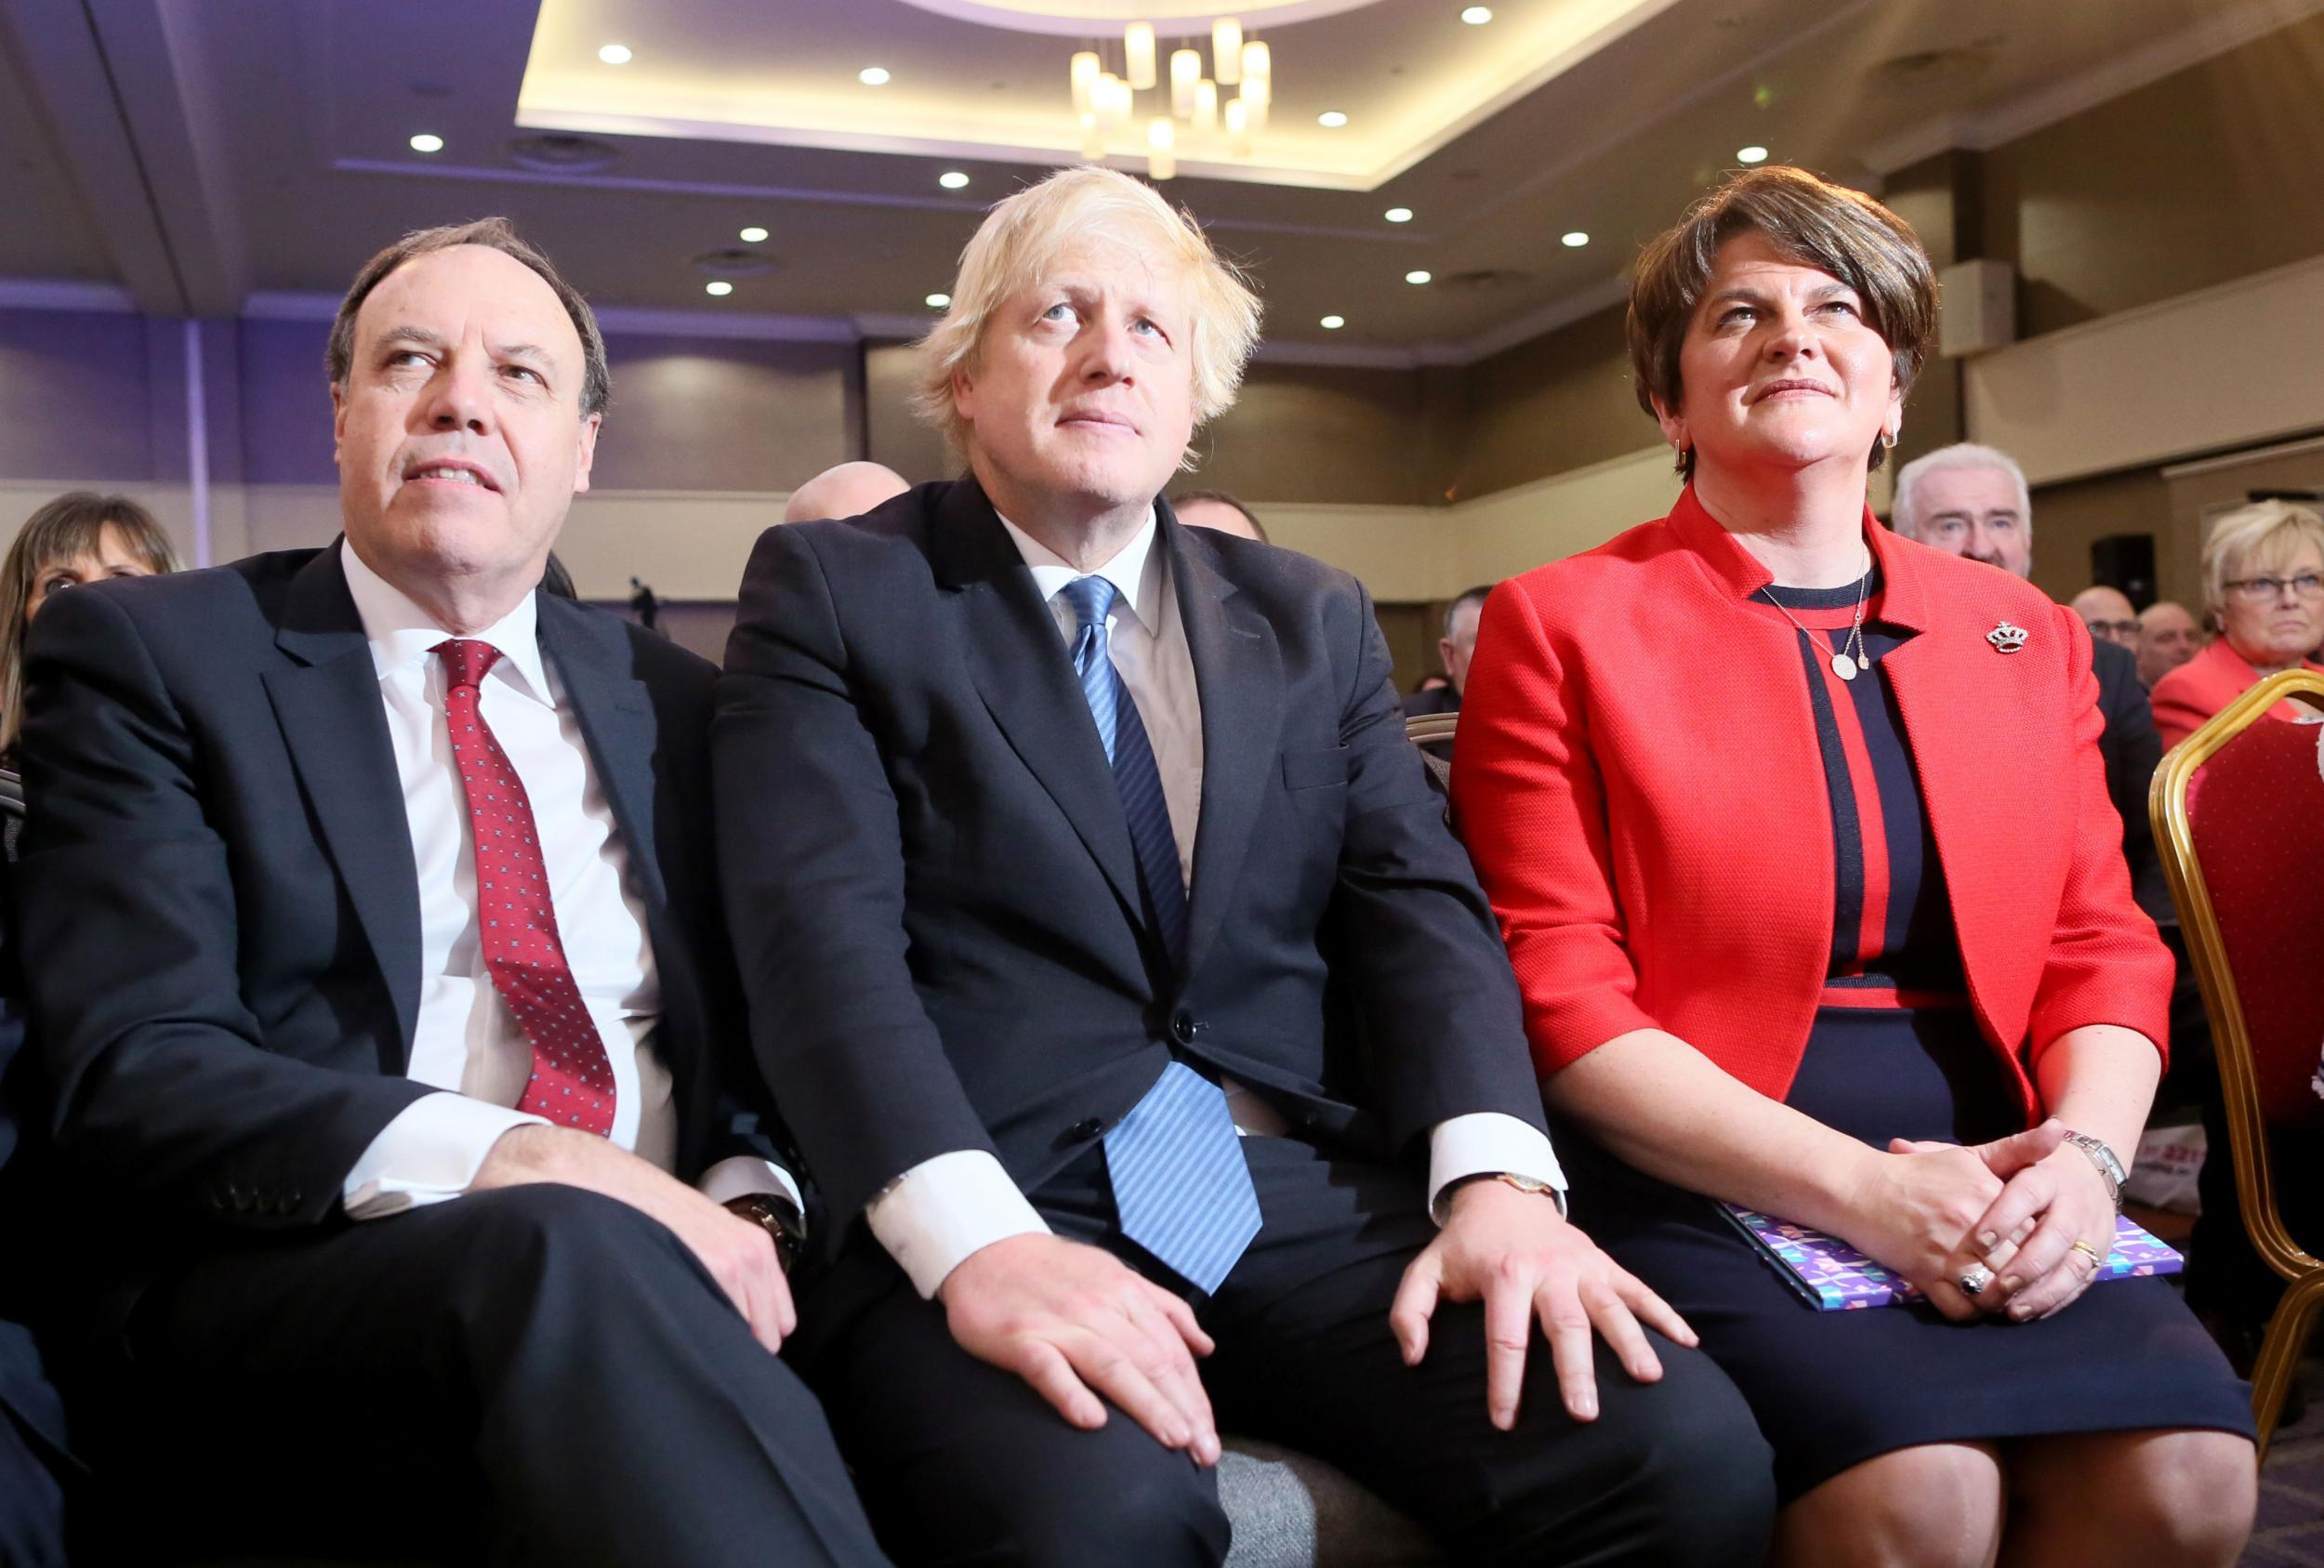 The DUP have become turkeys voting for Christmas as they steer us toward a no-deal Brexit